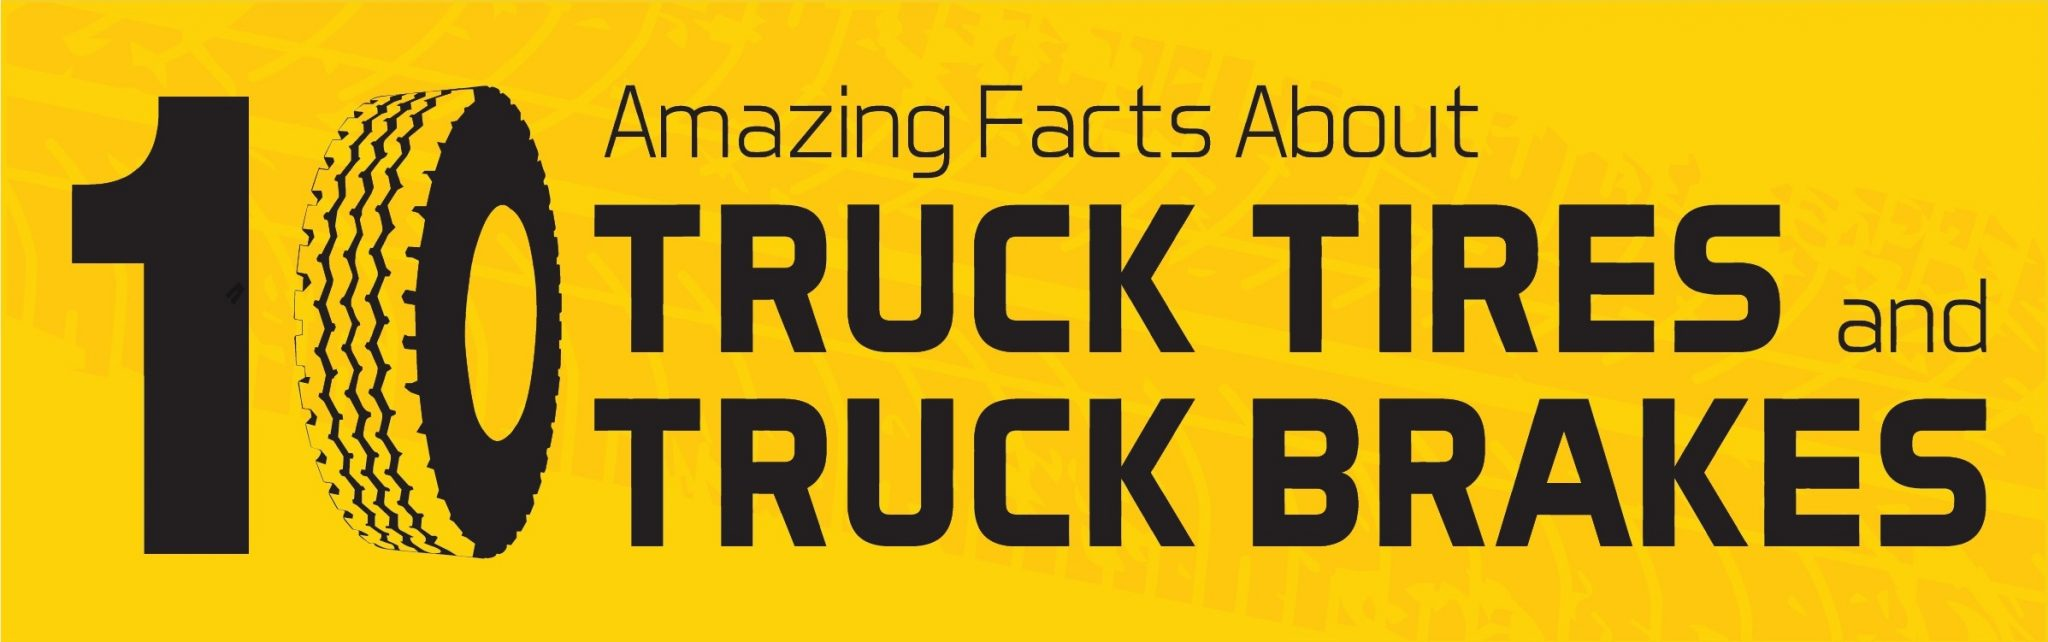 INFOGRAPHIC: 10 Little Known Facts About Semi Truck Tires and Car Tires